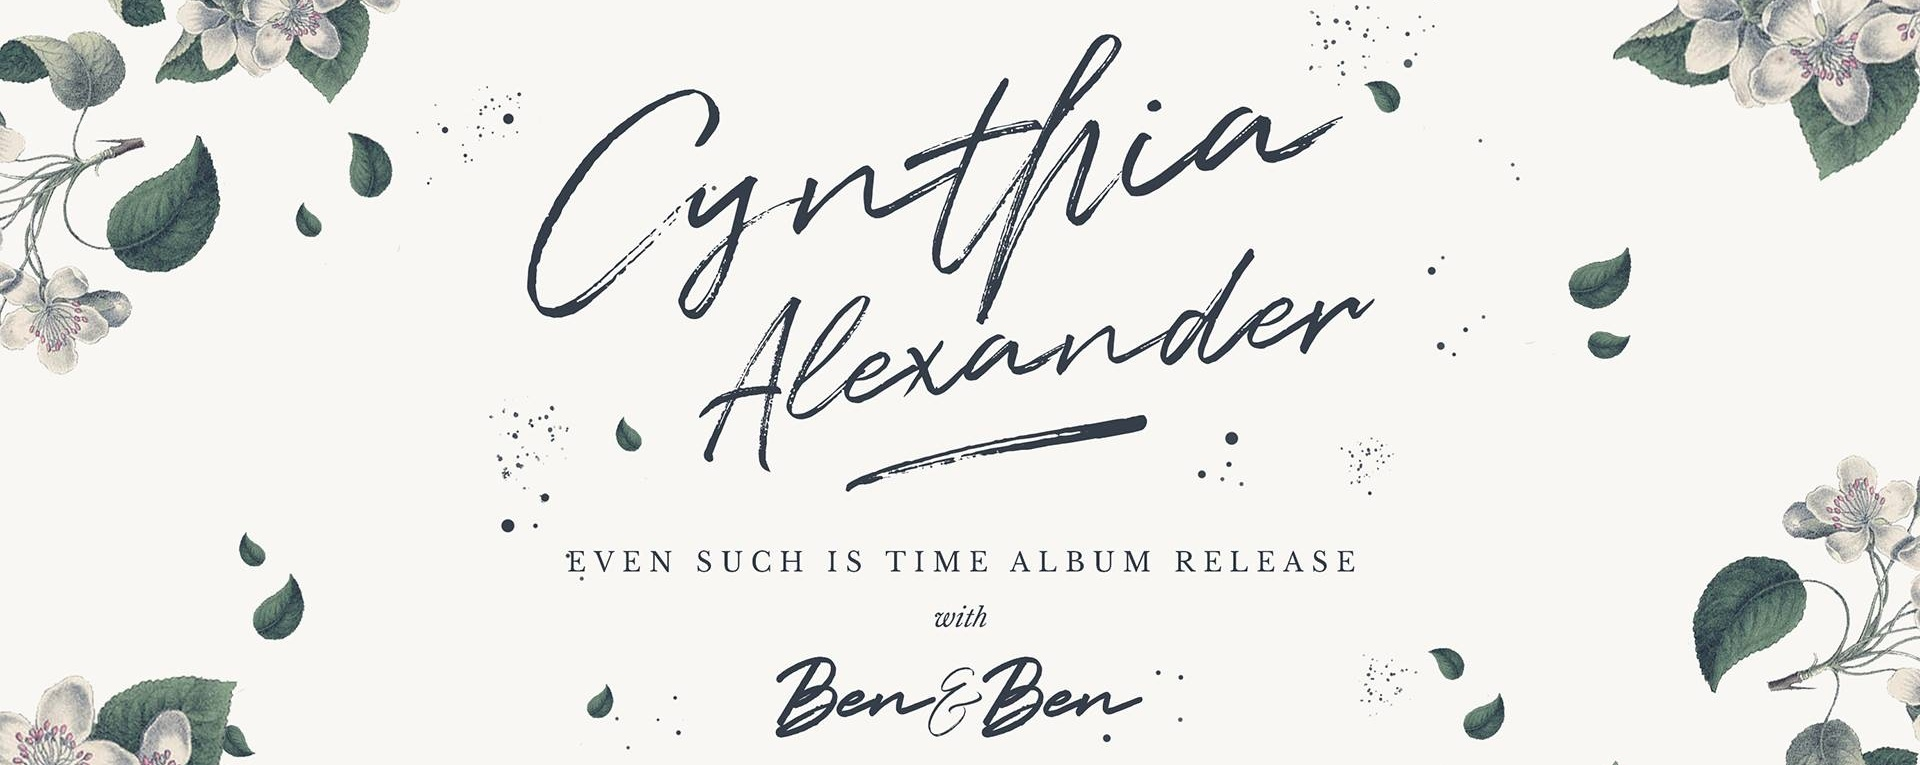 Cynthia Alexander: Even Such Is Time Album Release with Ben&Ben